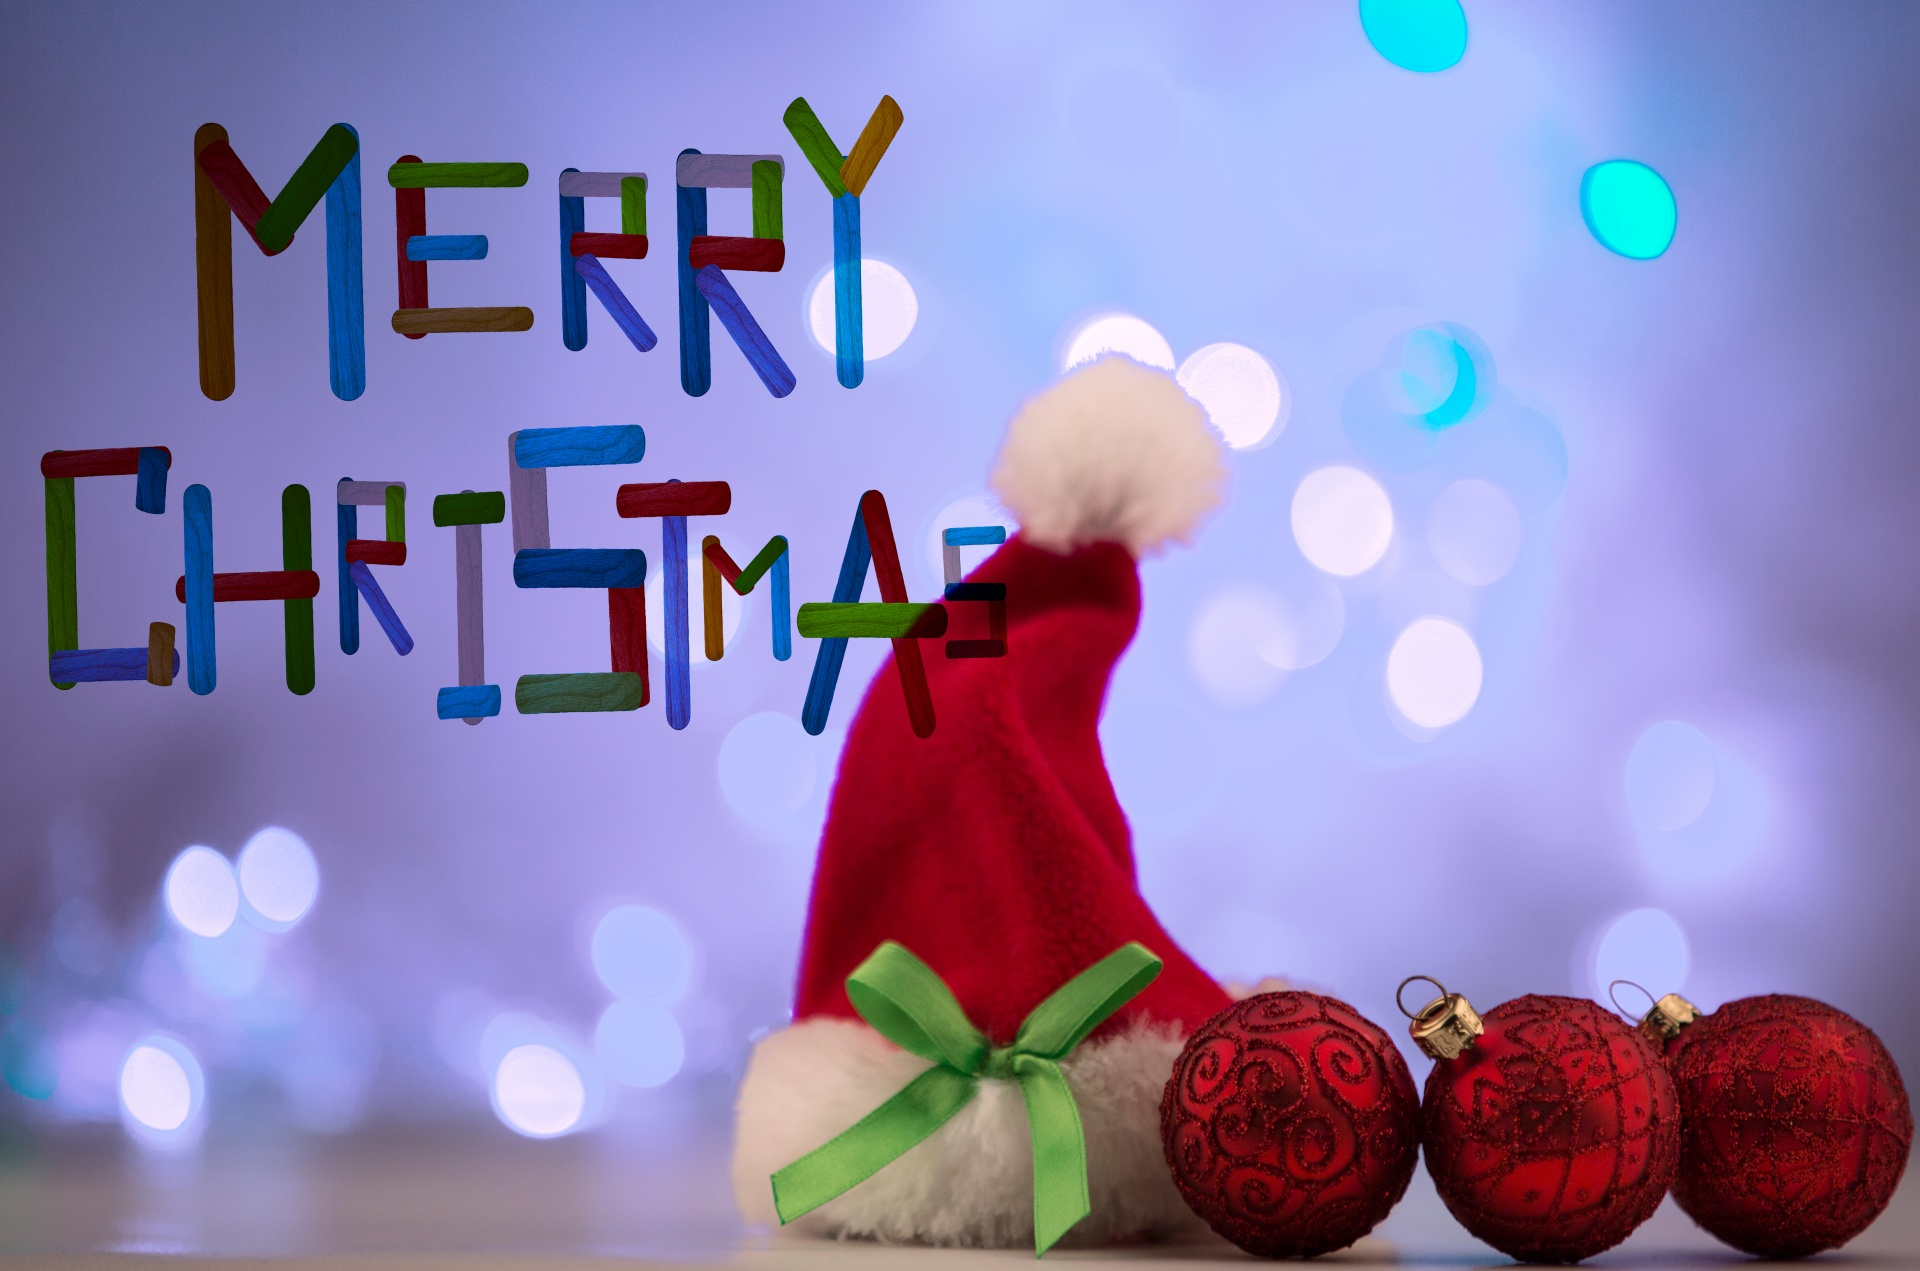 Merry Christmas Beautiful Picture